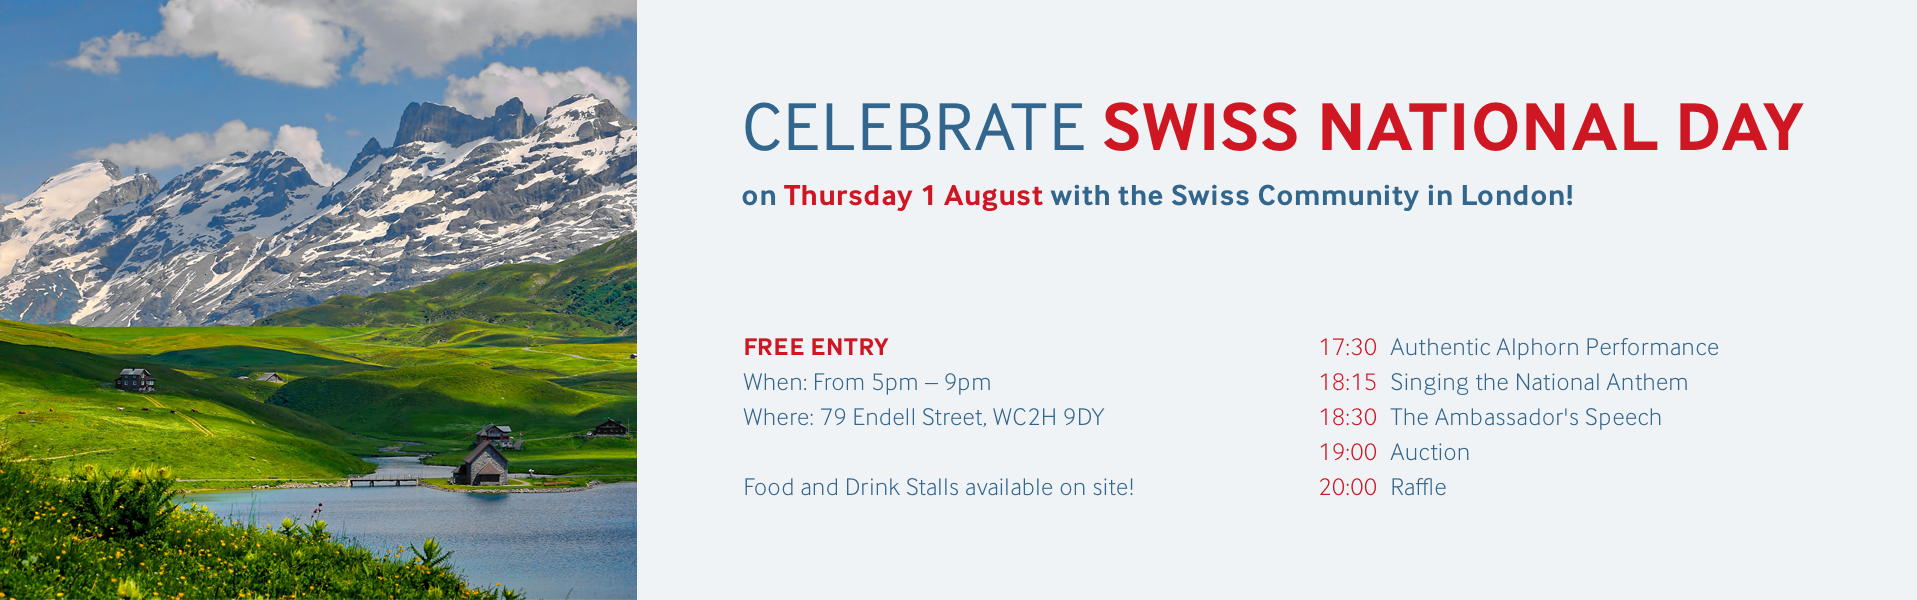 Swiss National Day 1 August Programme